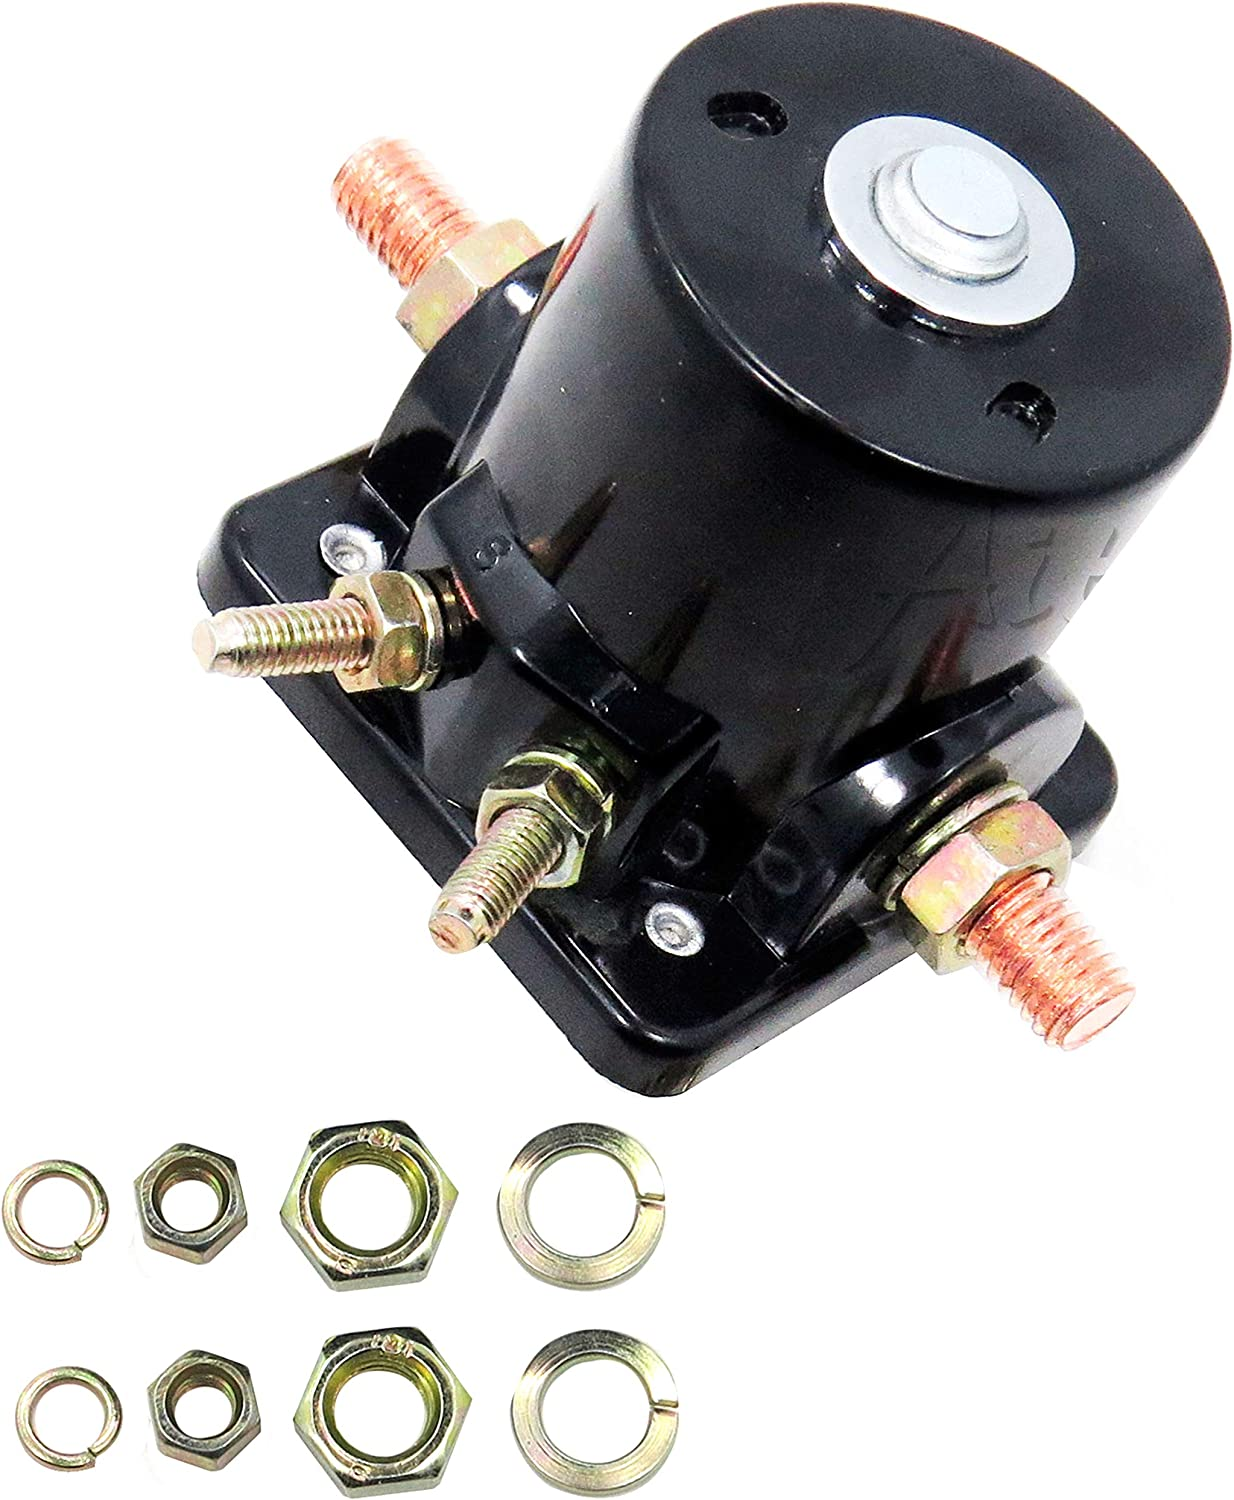 Aitook Starter Solenoid Relay Compatible with OMC Evinrude 35HP Motor 1976-1986